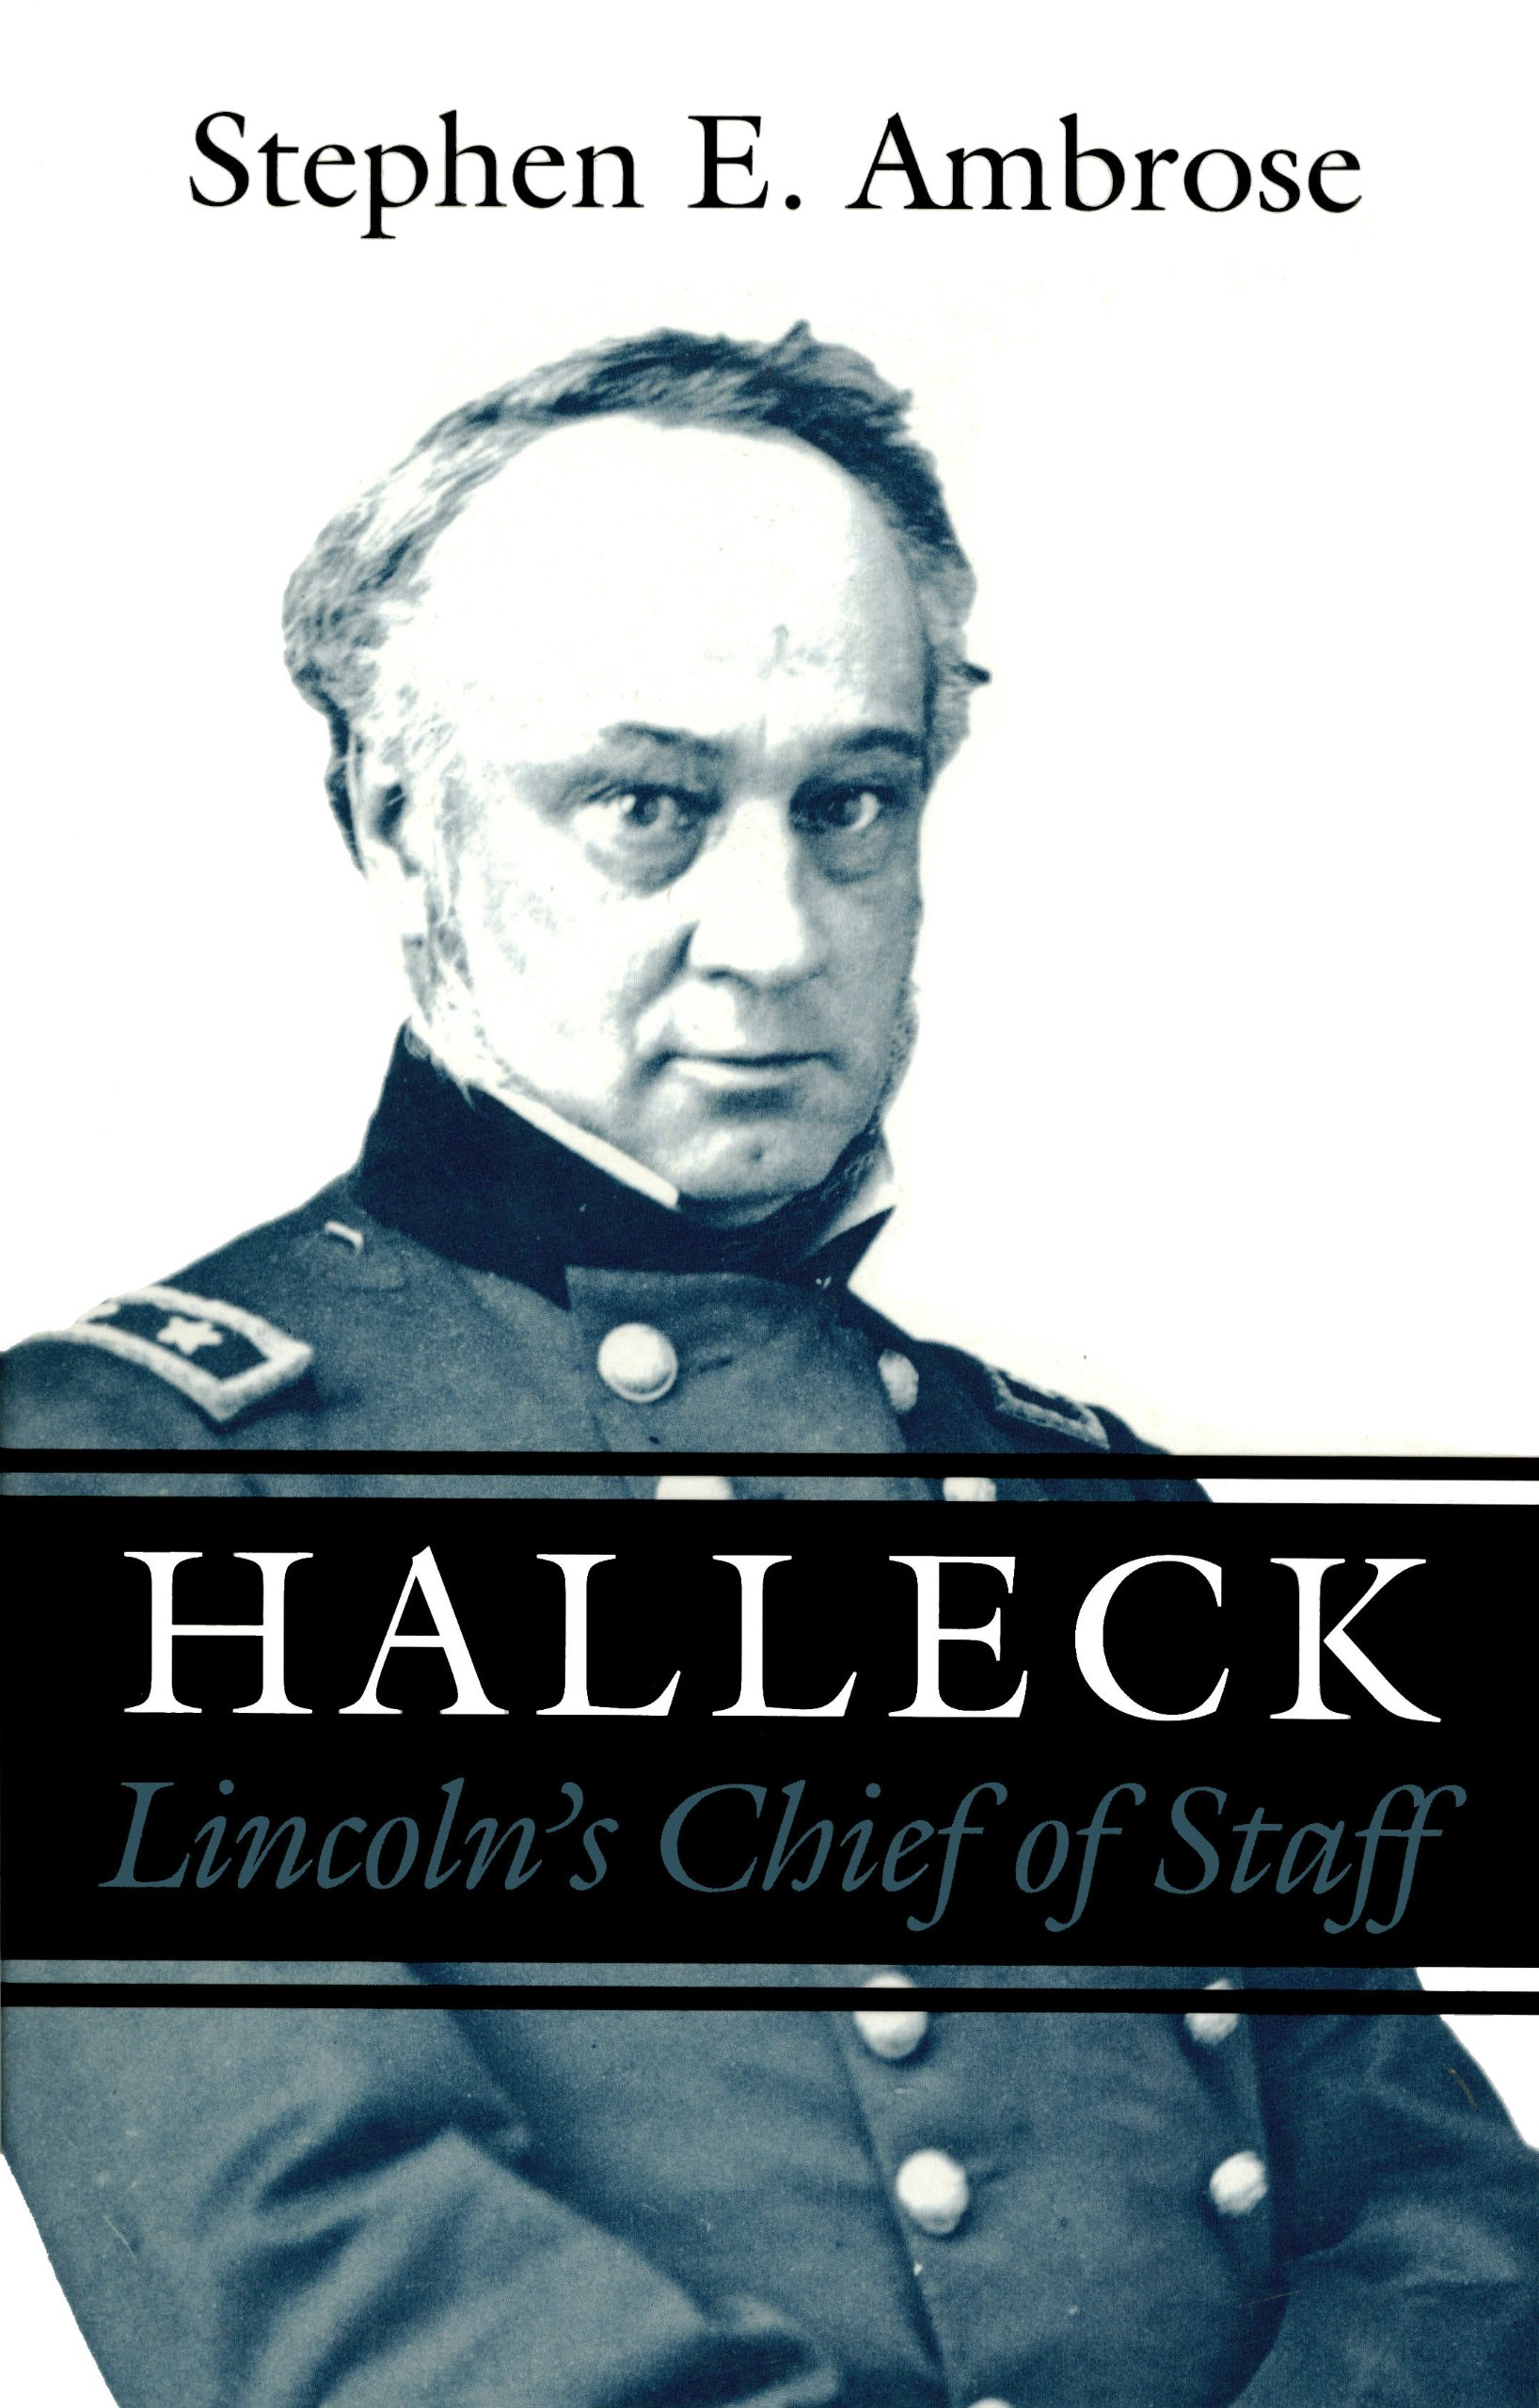 halleck-lincoln-s-chief-of-staff